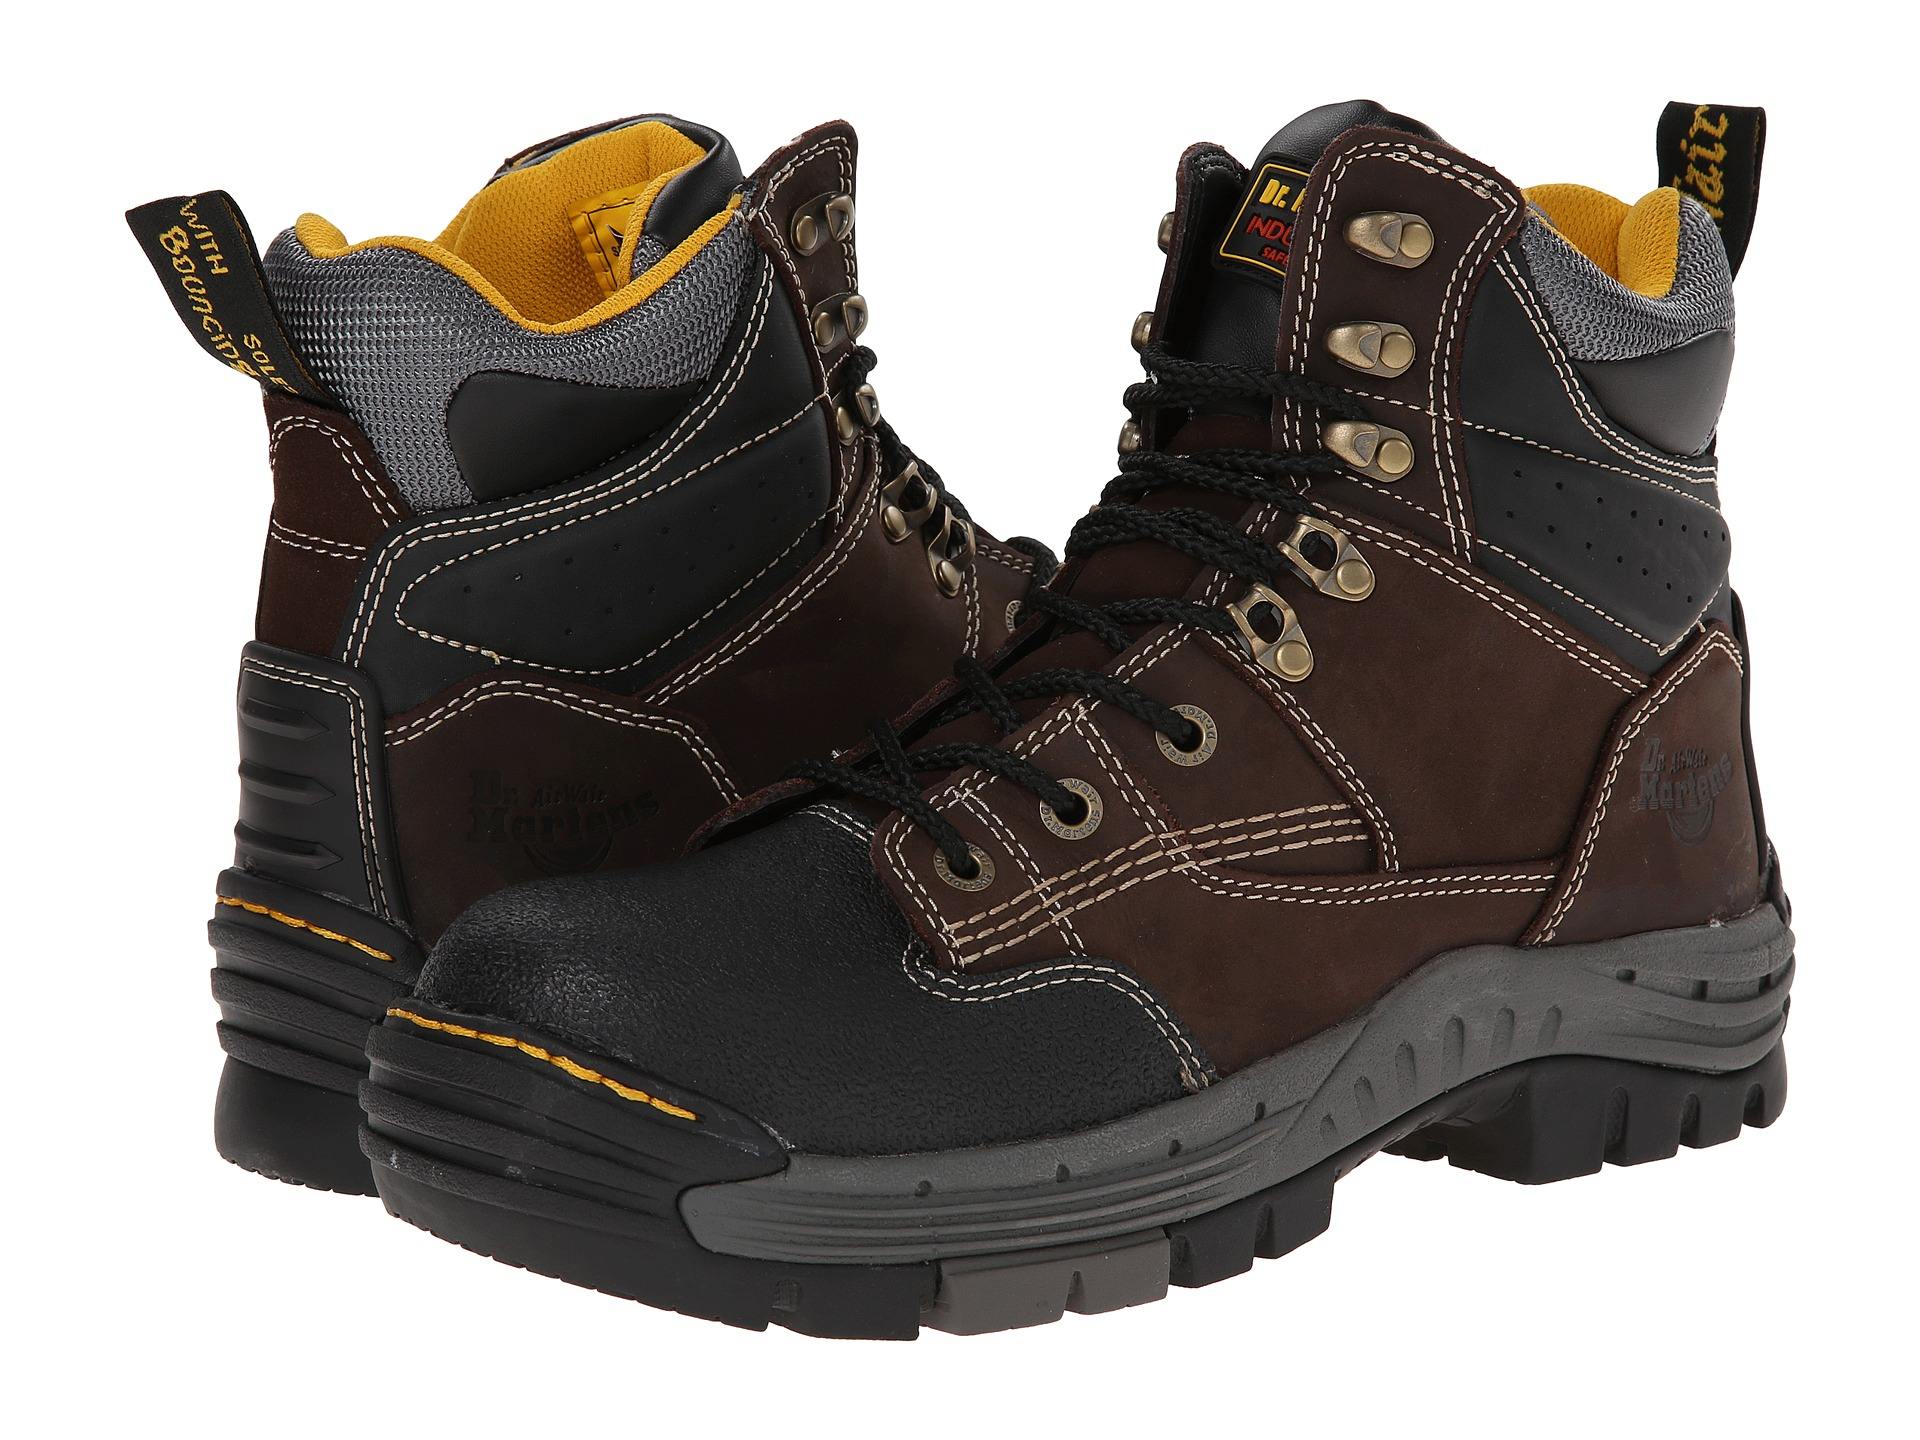 womens dr martens 8 tie finda roses boots Dr martens 1460 8-eye boot w (women's) 9 colors available $8995 - $13995 dr martens ironbridge tec-tuff safety toe 8 tie boot 11 colors available $12995.